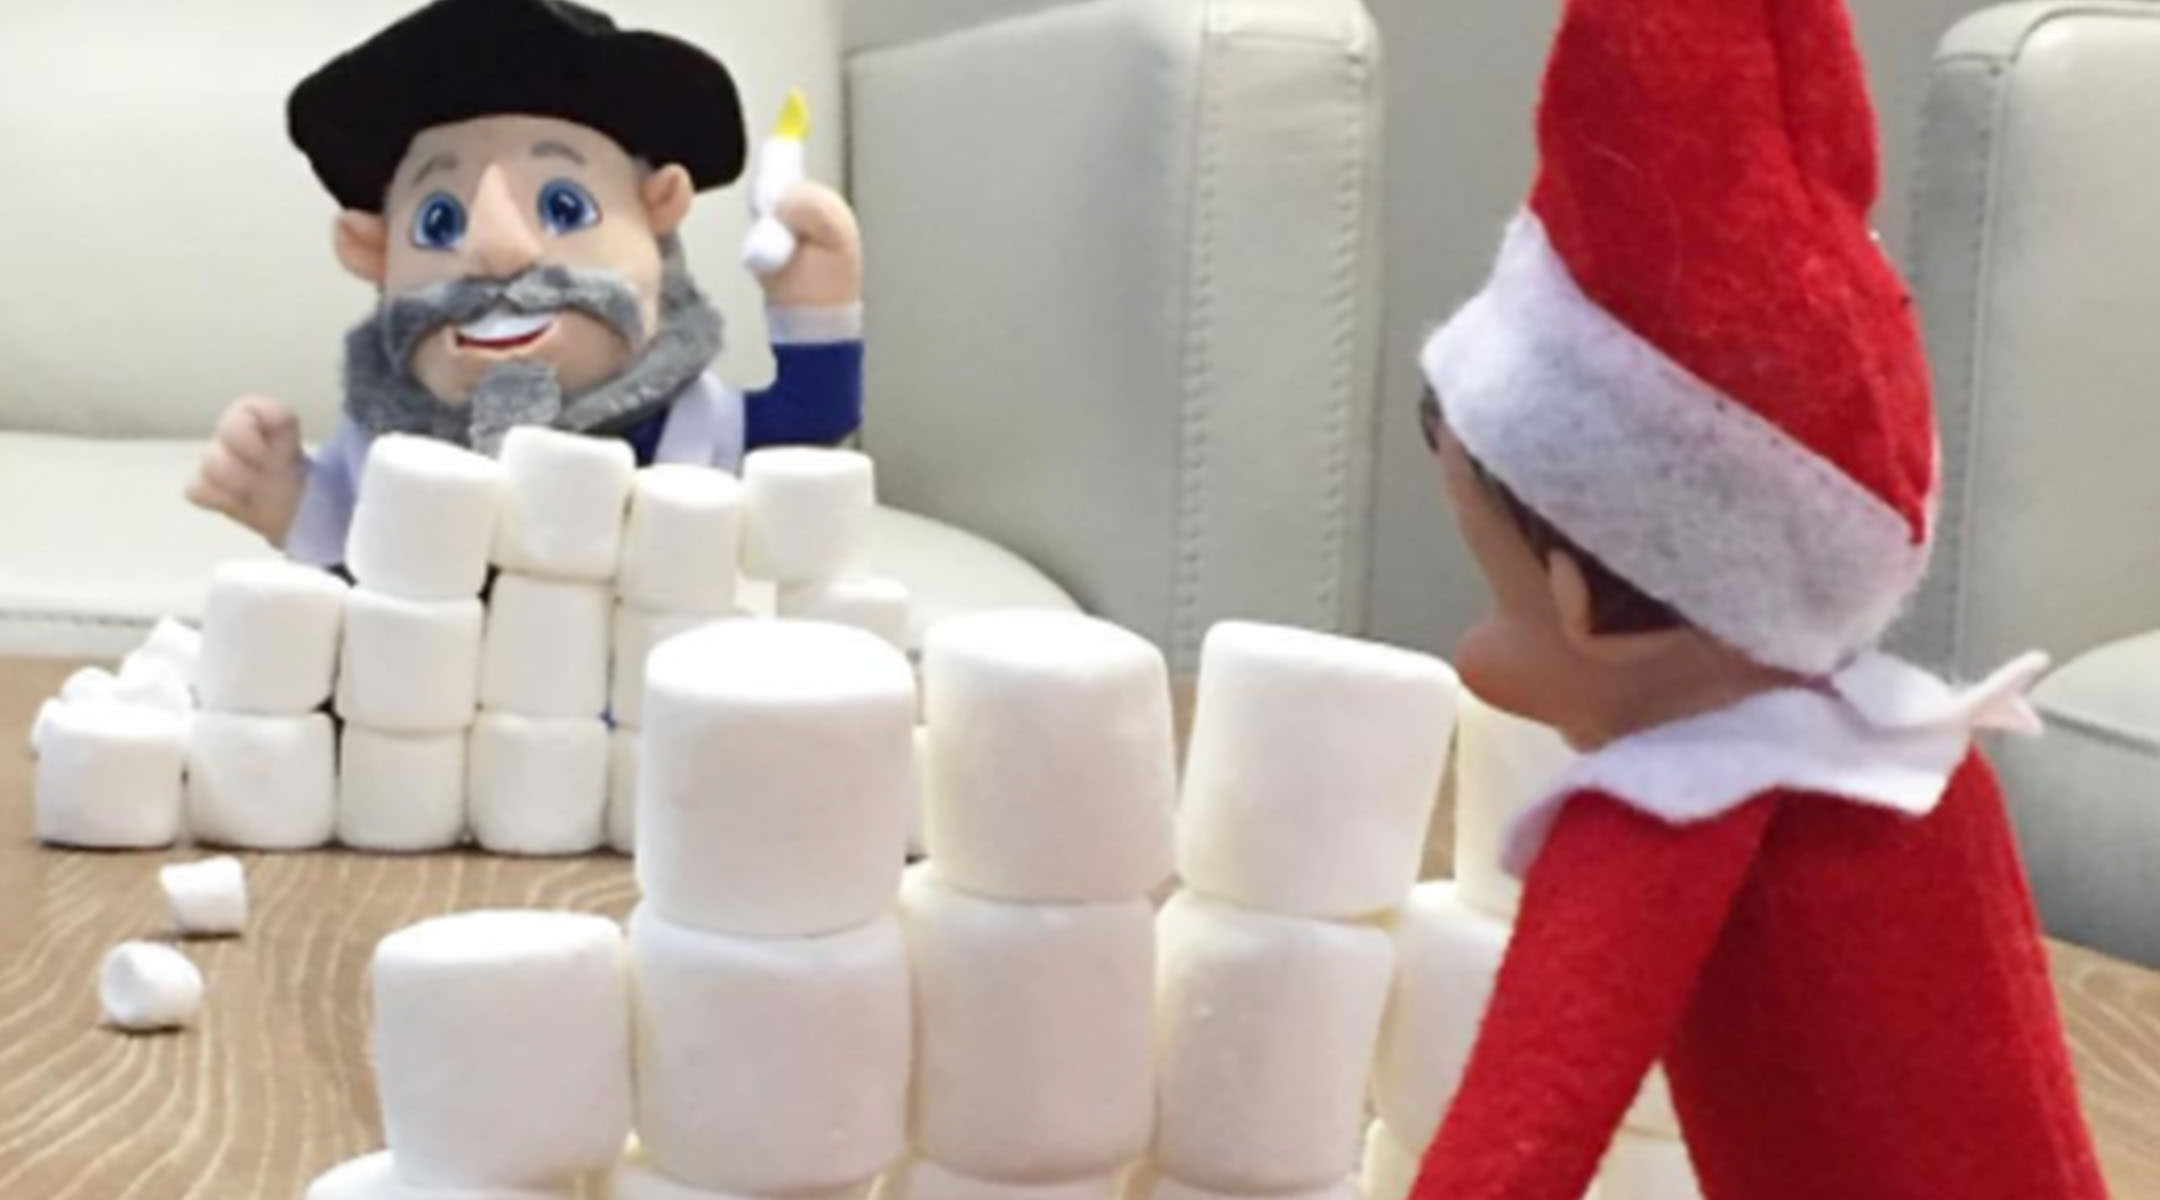 Amazing Elf The Shelf And Mensch A Bench Poses